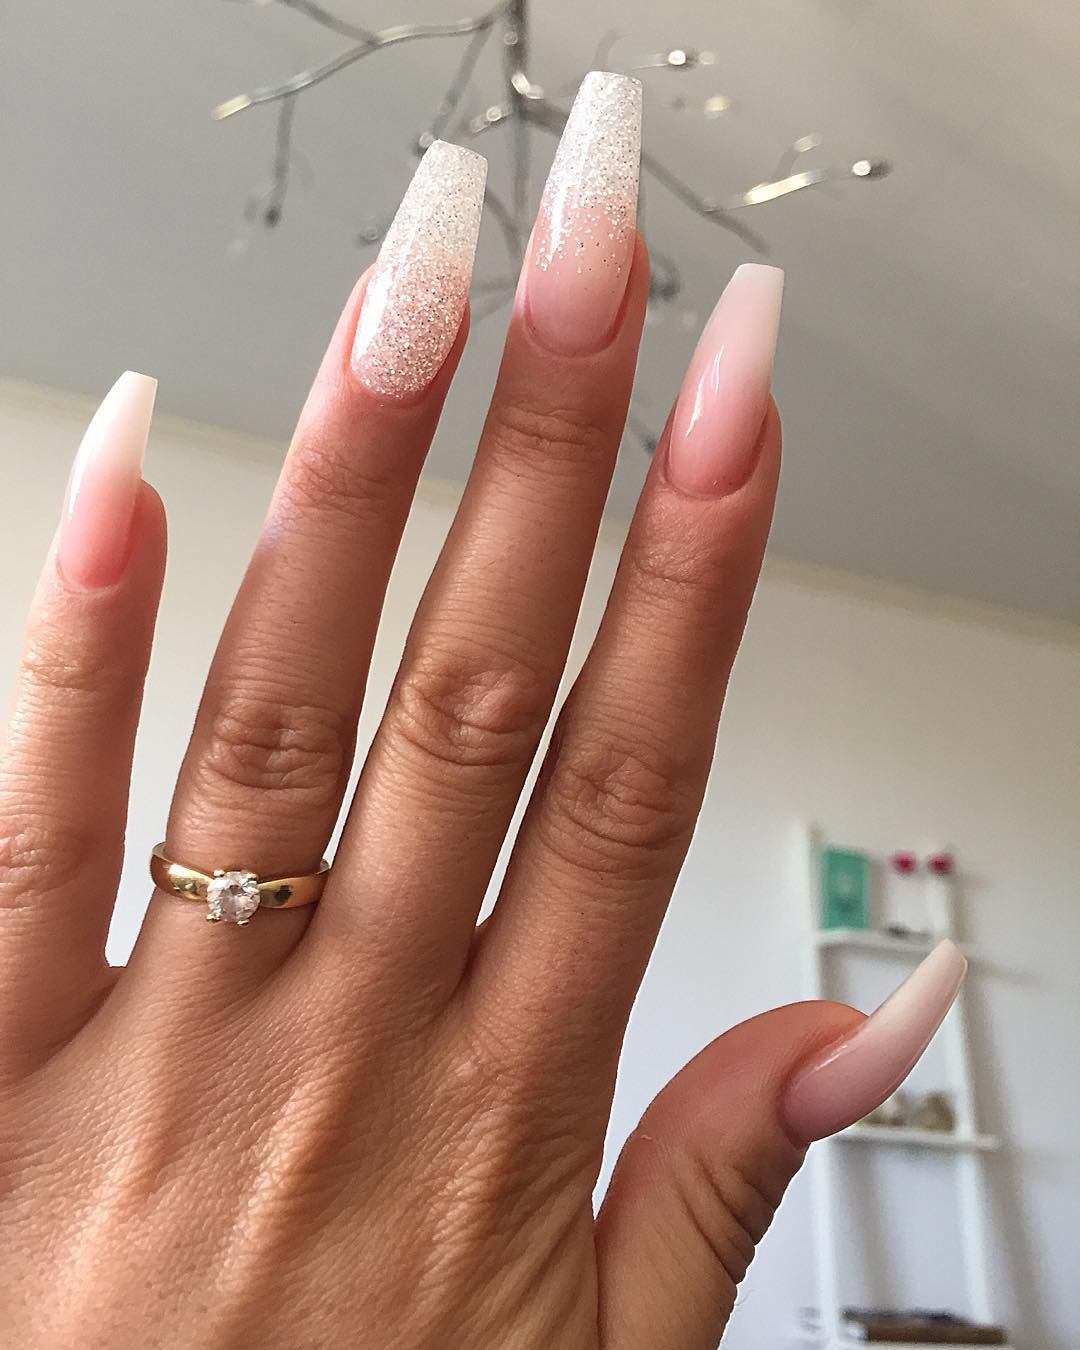 13 Reasons Why Coffin Nails Are The Hottest Mani Trend For Summer Brit Co Polygel Nails Coffin Nails Long Gorgeous Nails